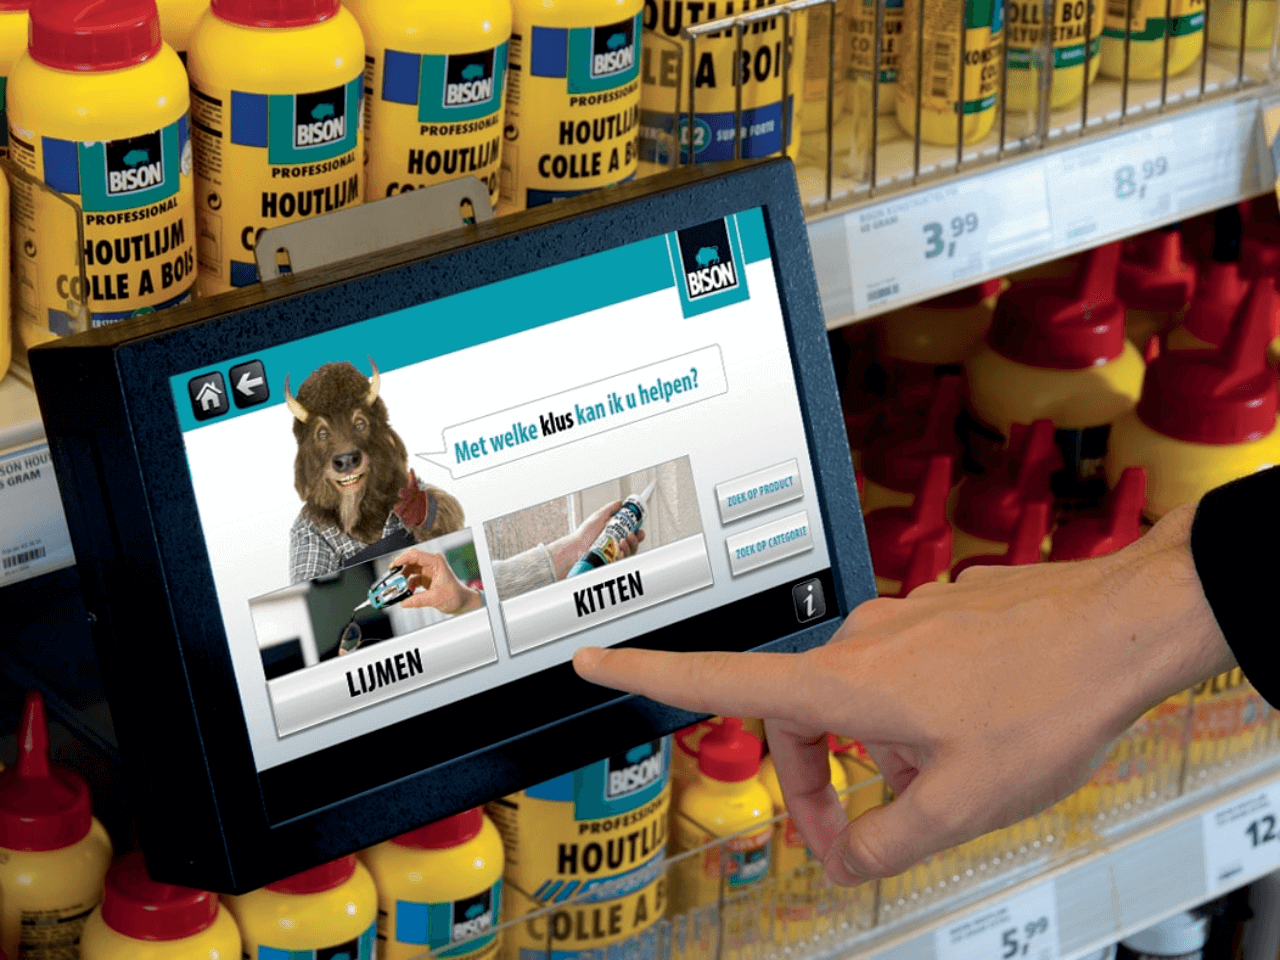 AlisQI cloud based QMS software improved the quality of Bison's products